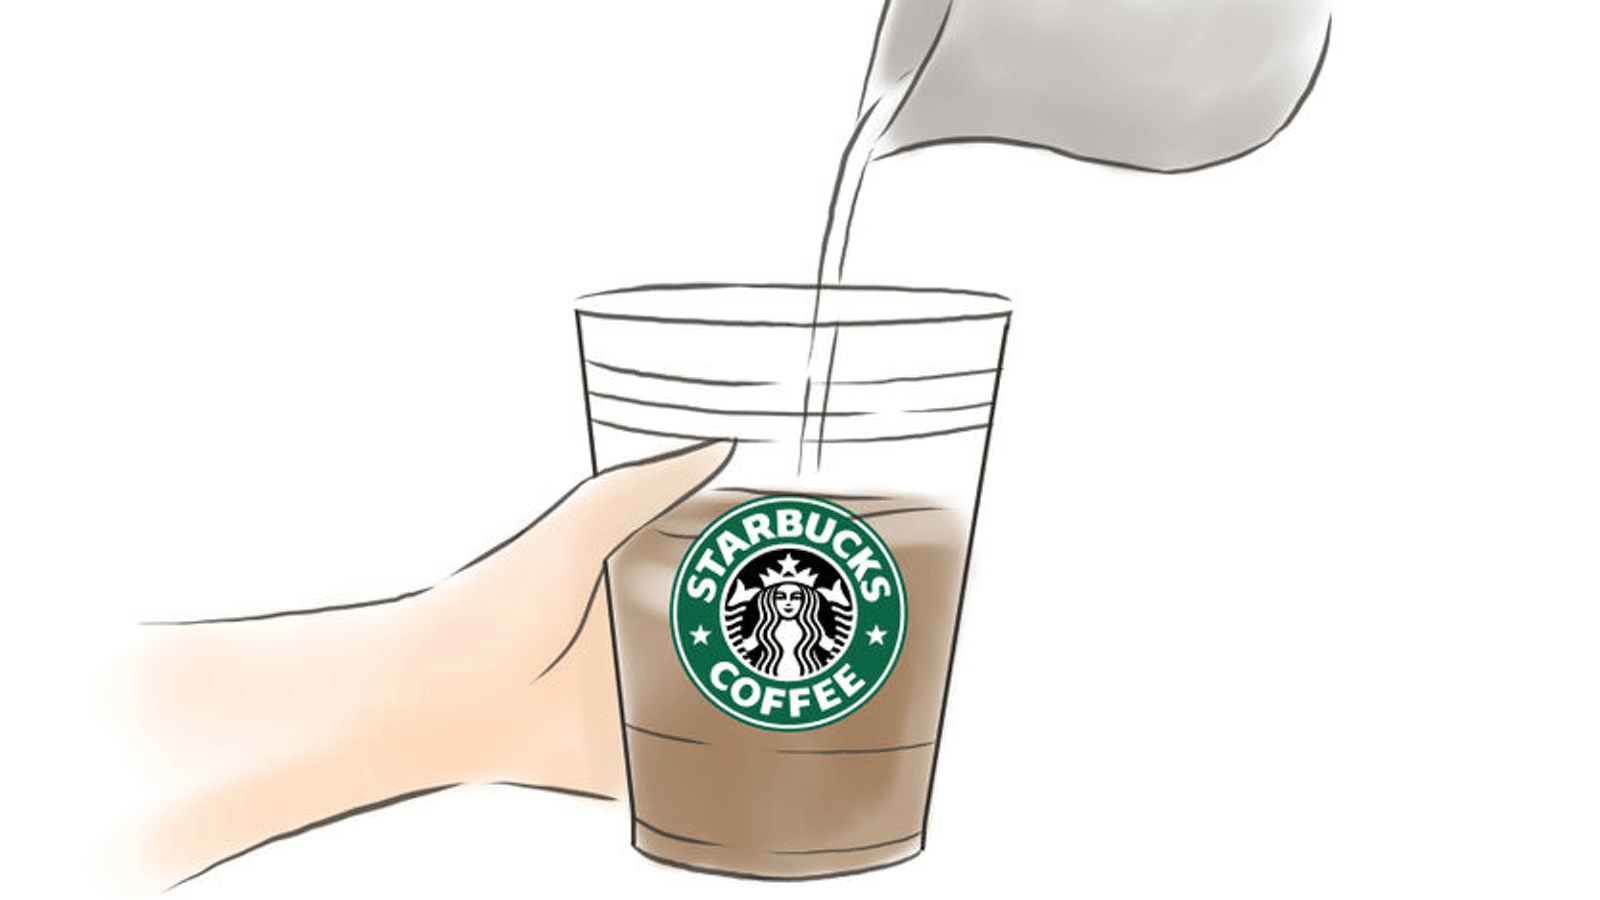 VAMERS - FYI - LIFESTYLE - Ordering at Starbucks- A Guide to Starbucks Lingo - Starbucks Drinks Customised